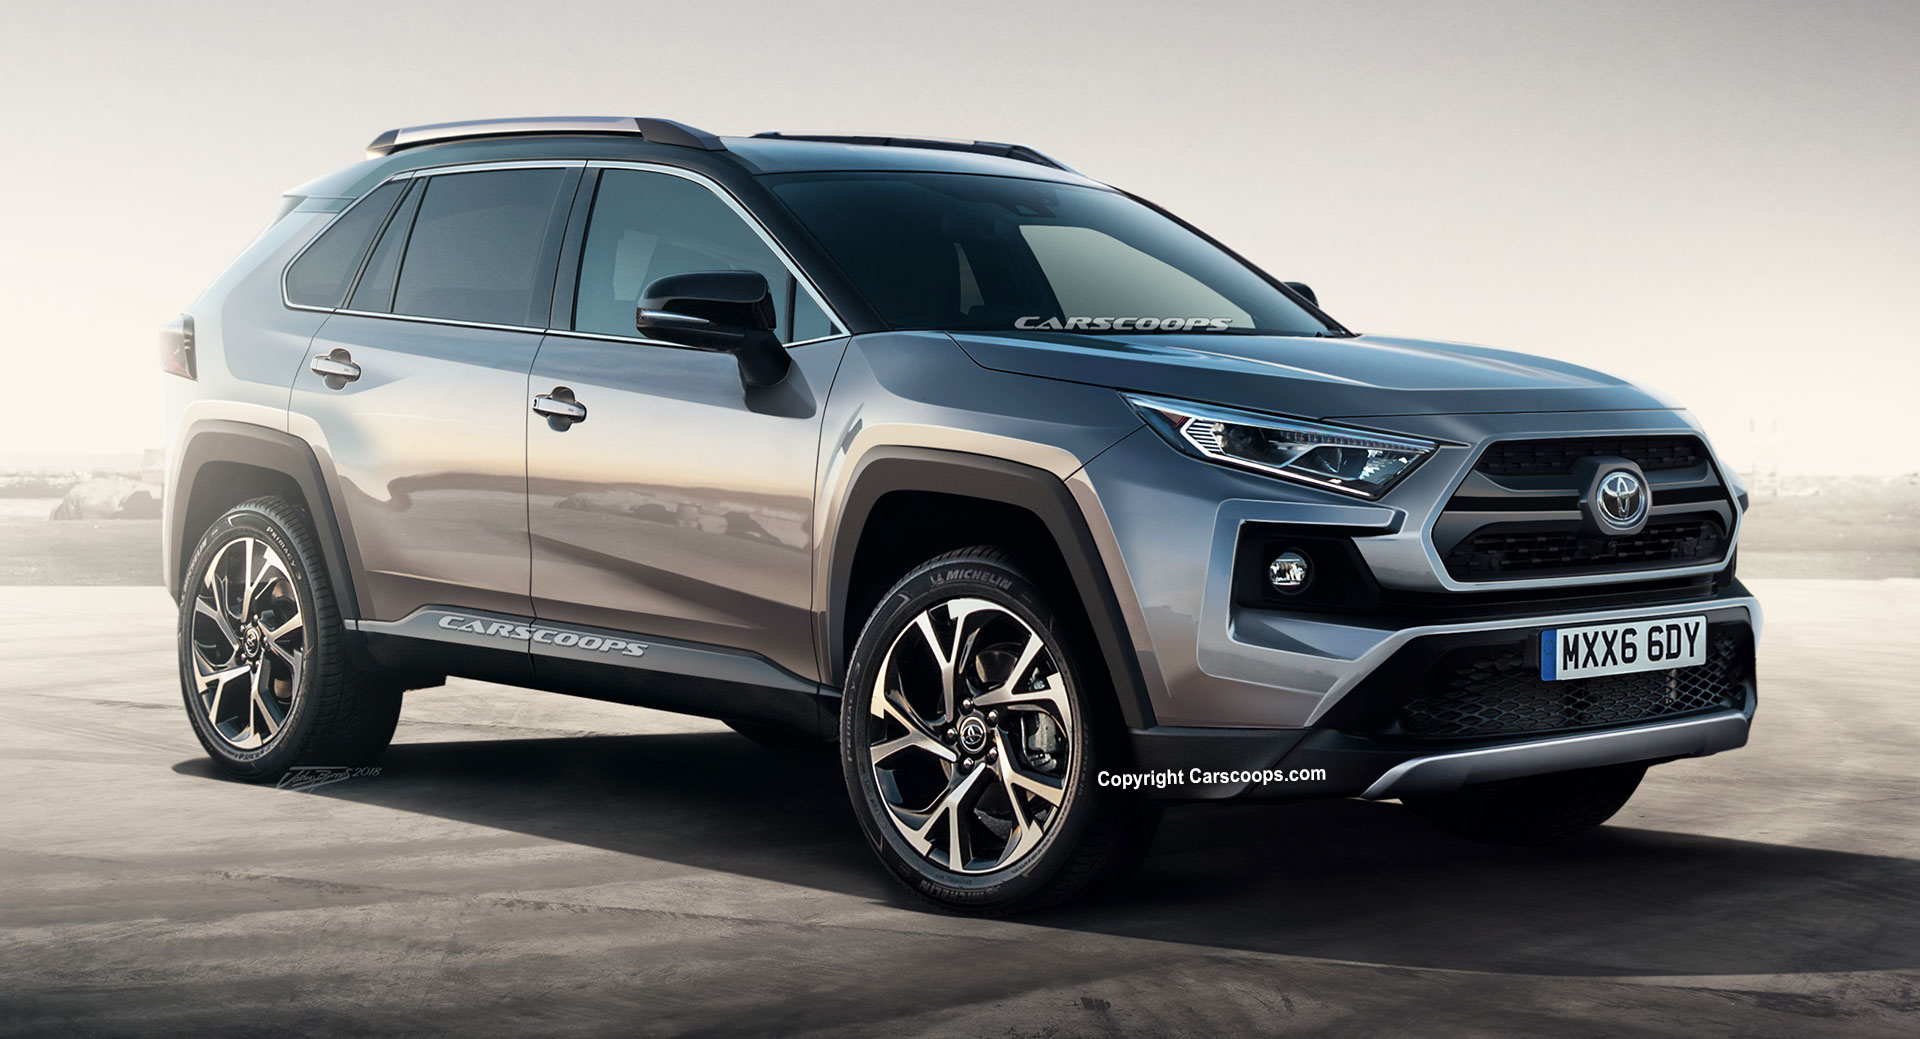 Toyota Rav4 2018 Hybrid >> What do you Highlander owners think of the upcoming Rav4? - Toyota Nation Forum : Toyota Car and ...